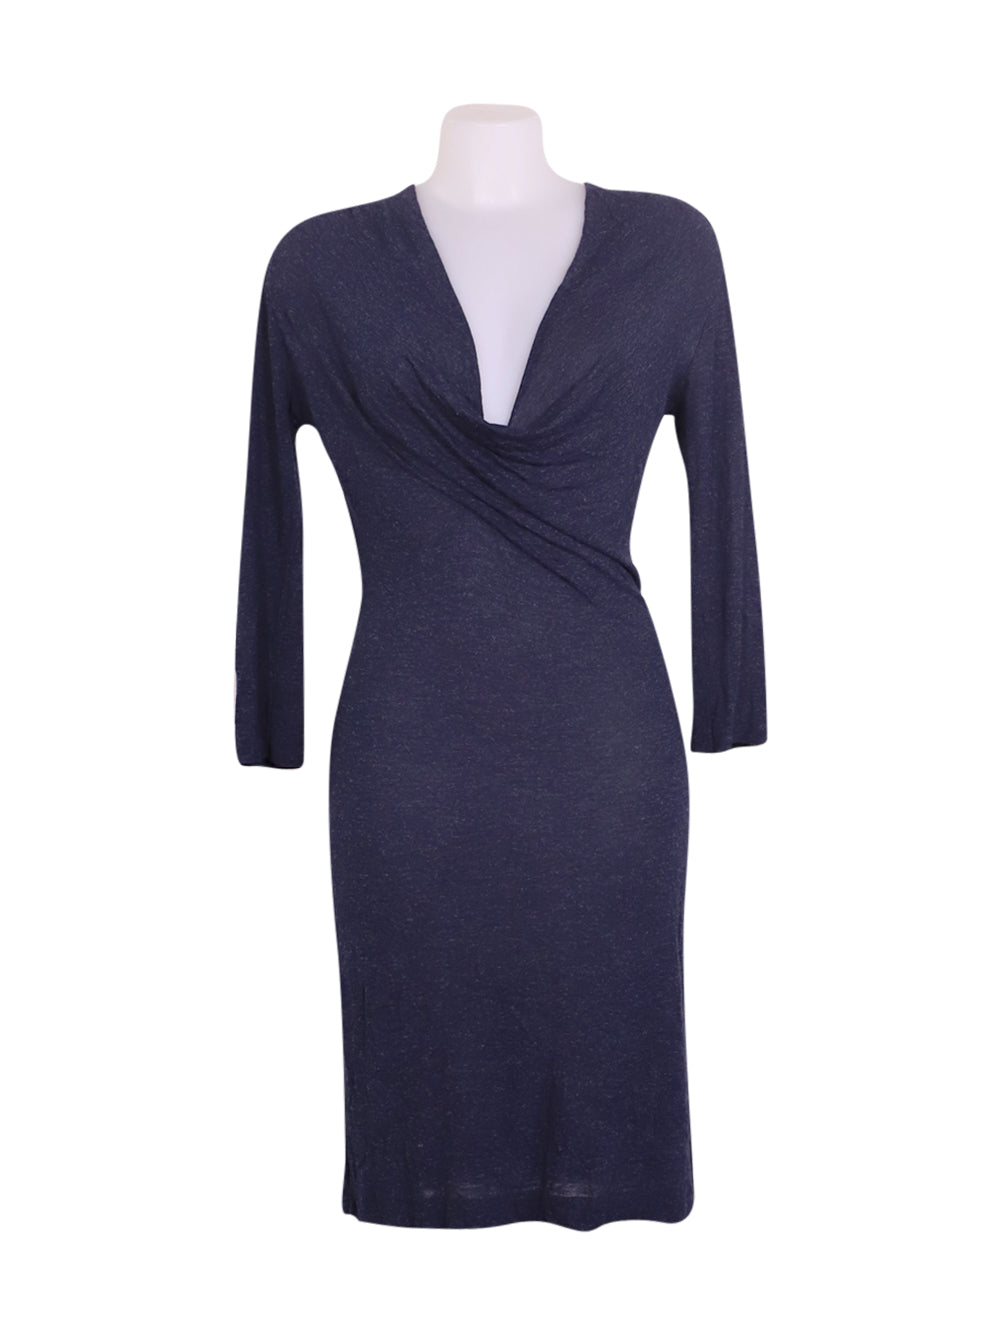 Front photo of Preloved Sisley Blue Woman's dress - size 10/M